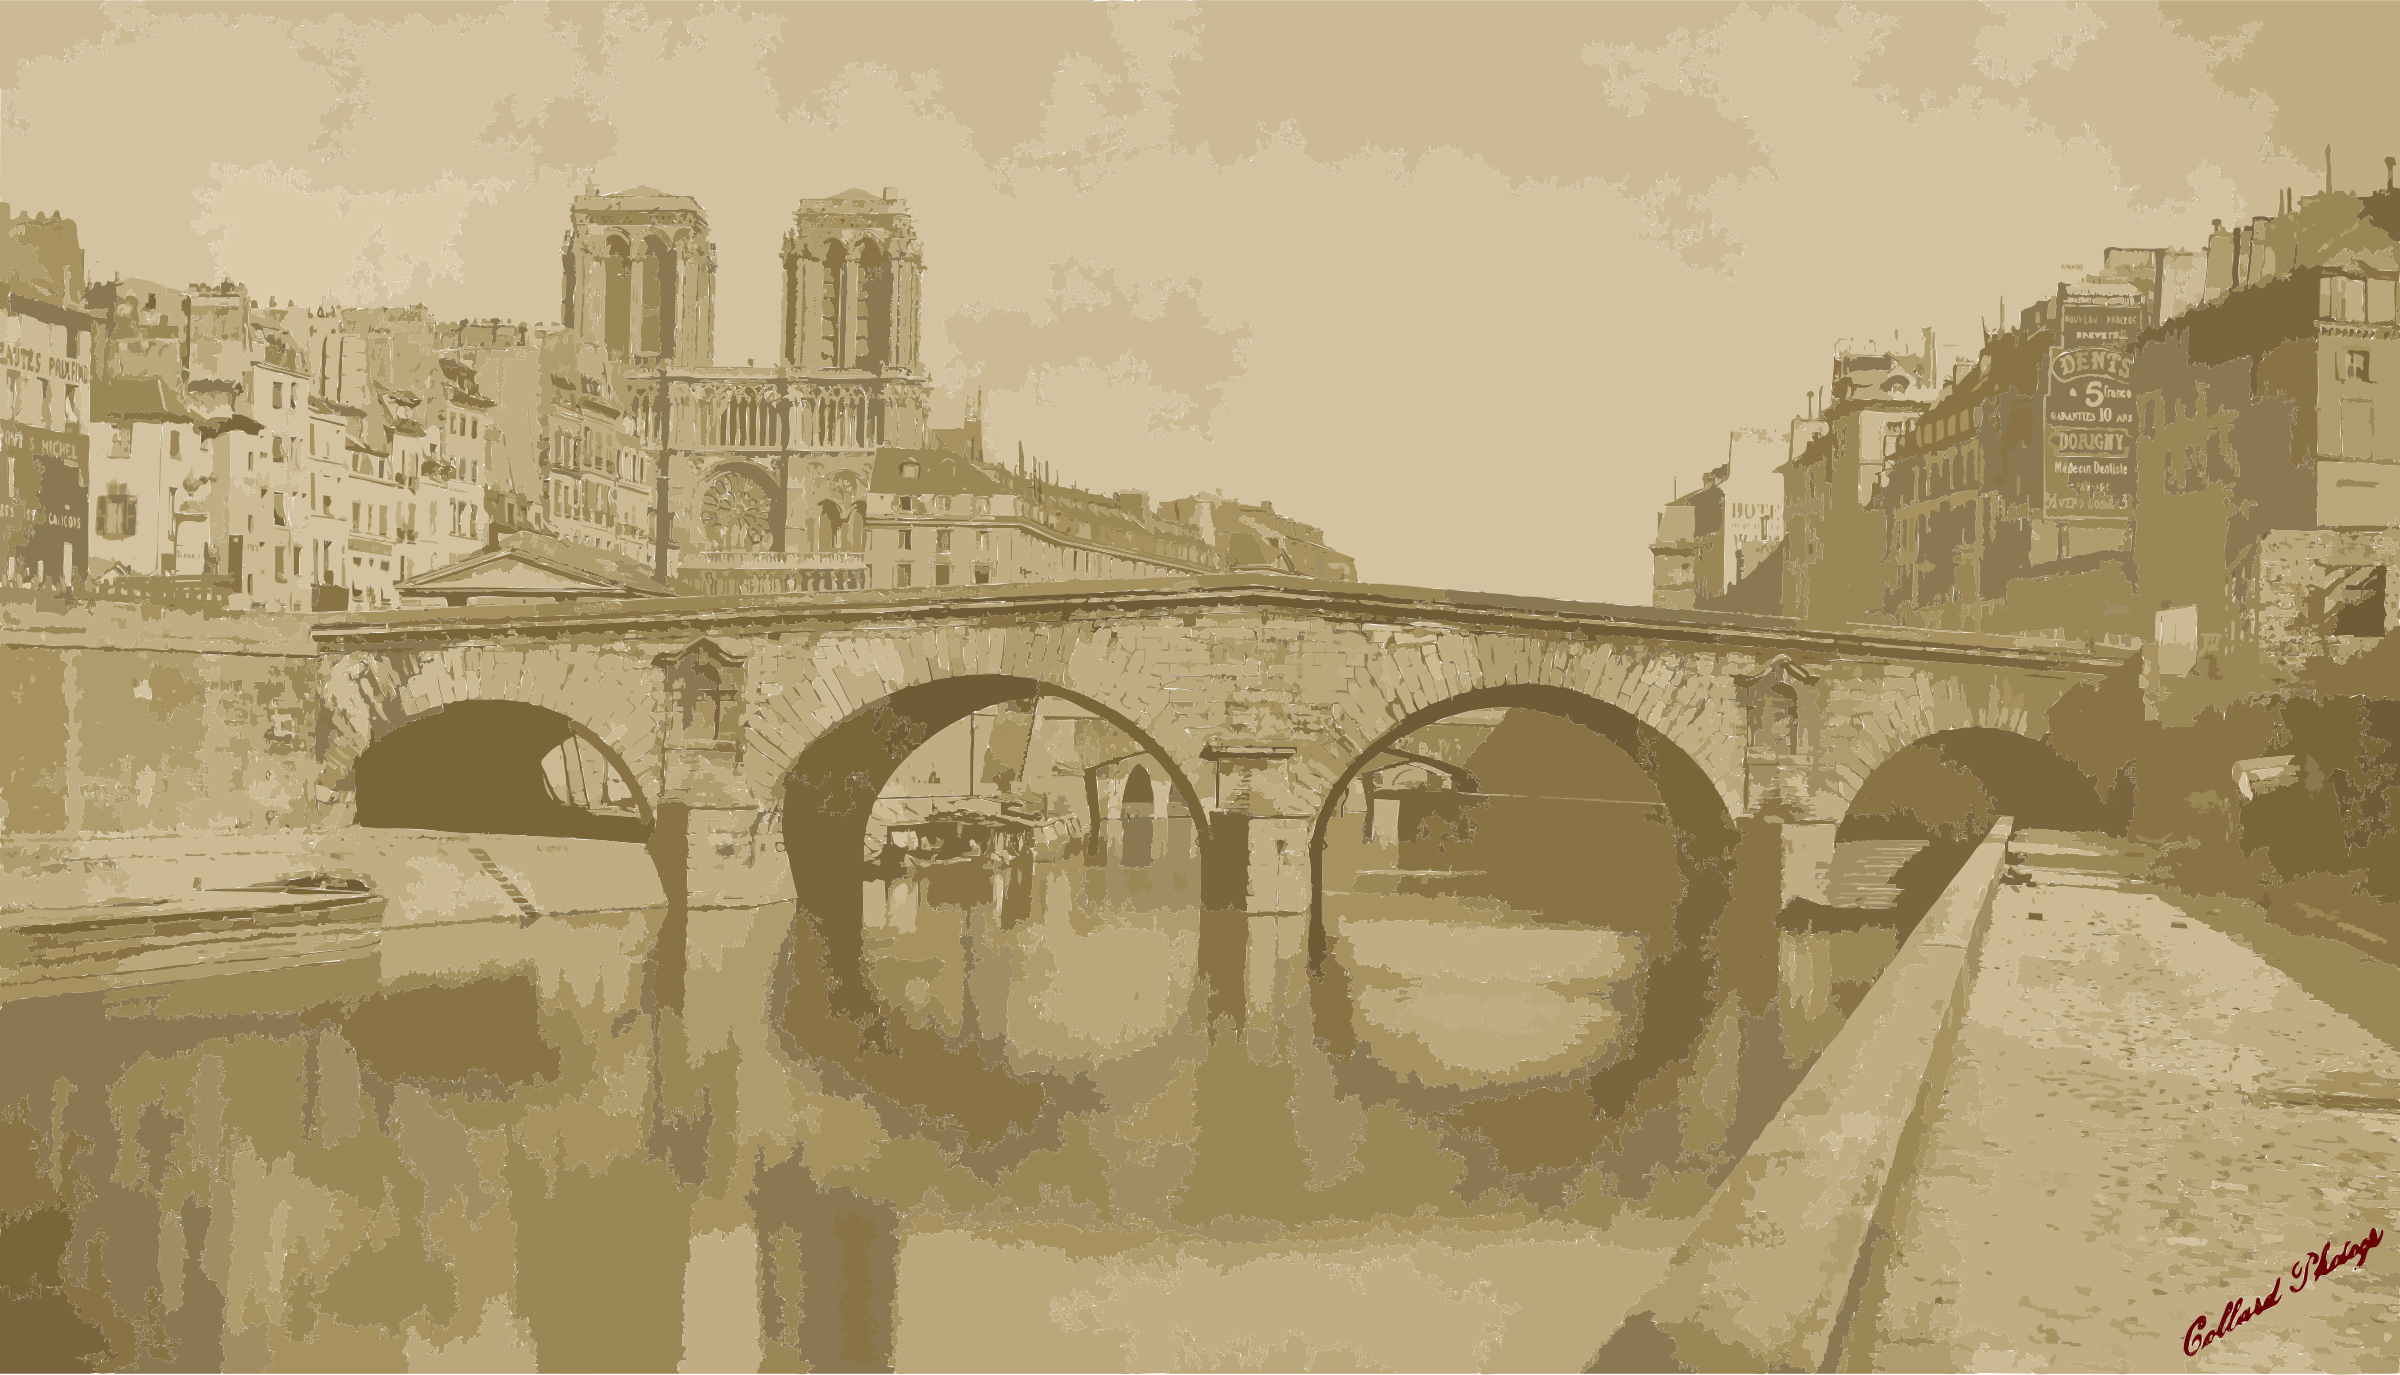 Auguste-Hippolyte Collard, Ancien pont Saint-Michel, 1857 by 5n9sst+earkddiows40g